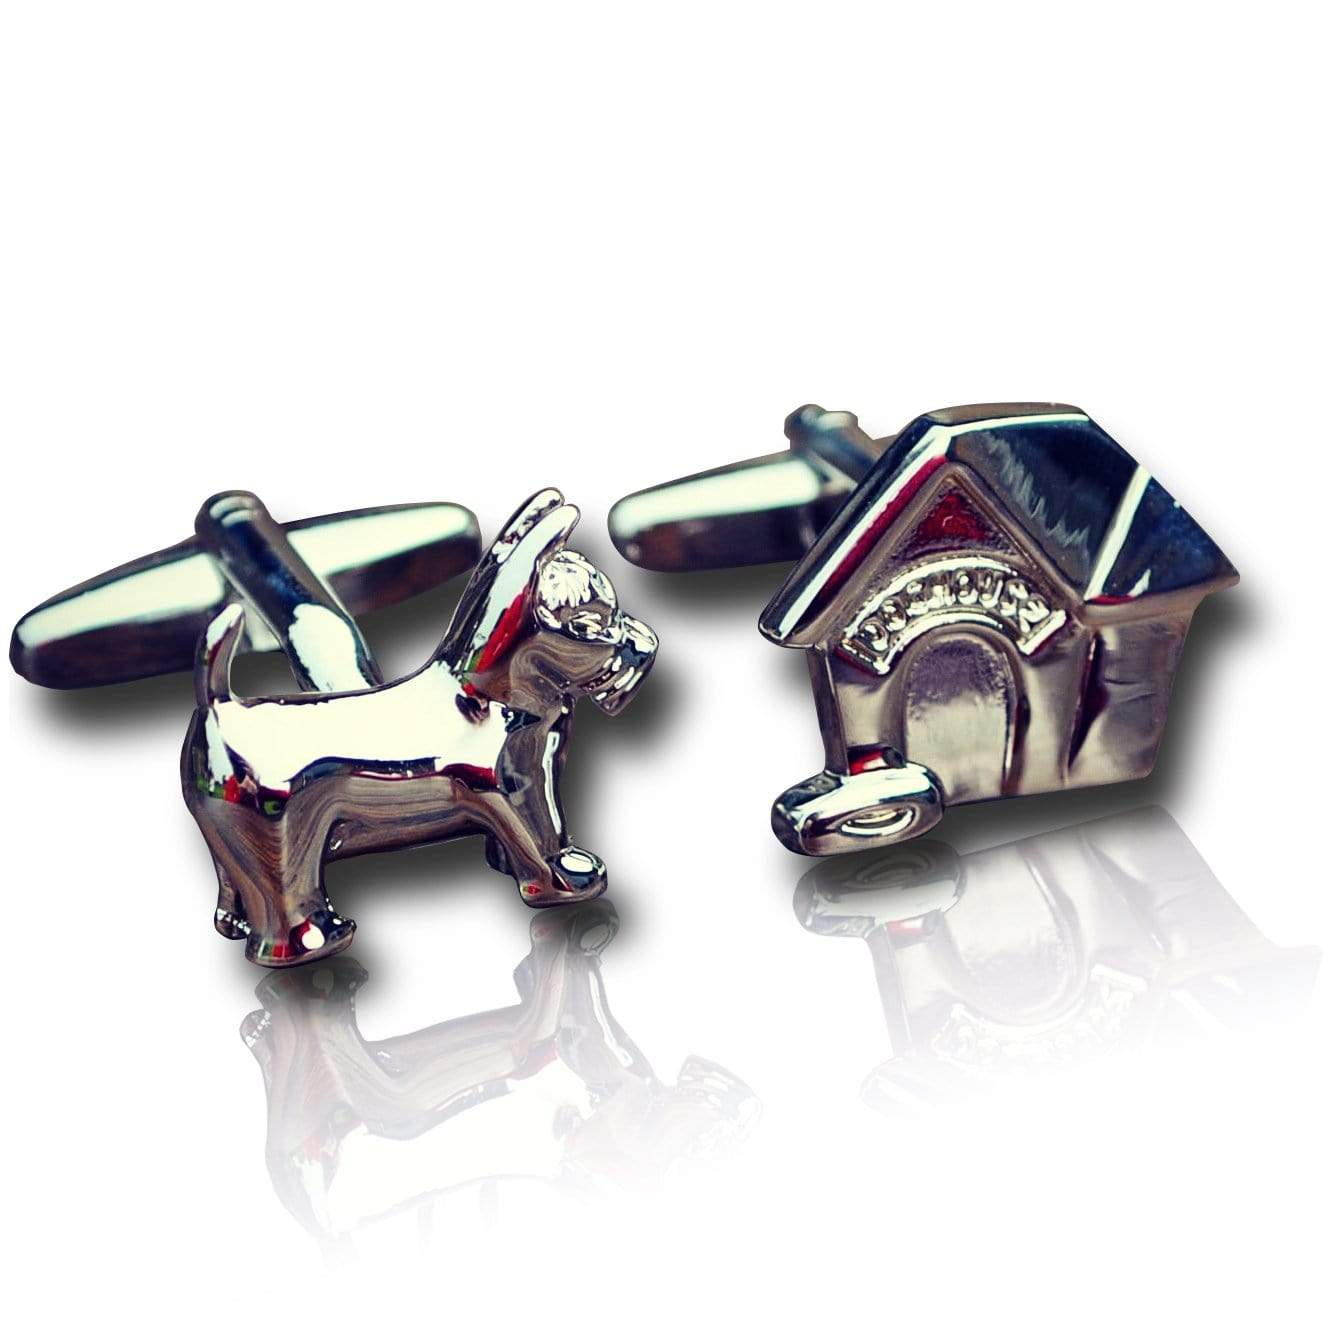 Men's Cufflinks | Lingo Luxe The Best Friend-Lingo Luxe Bespoke